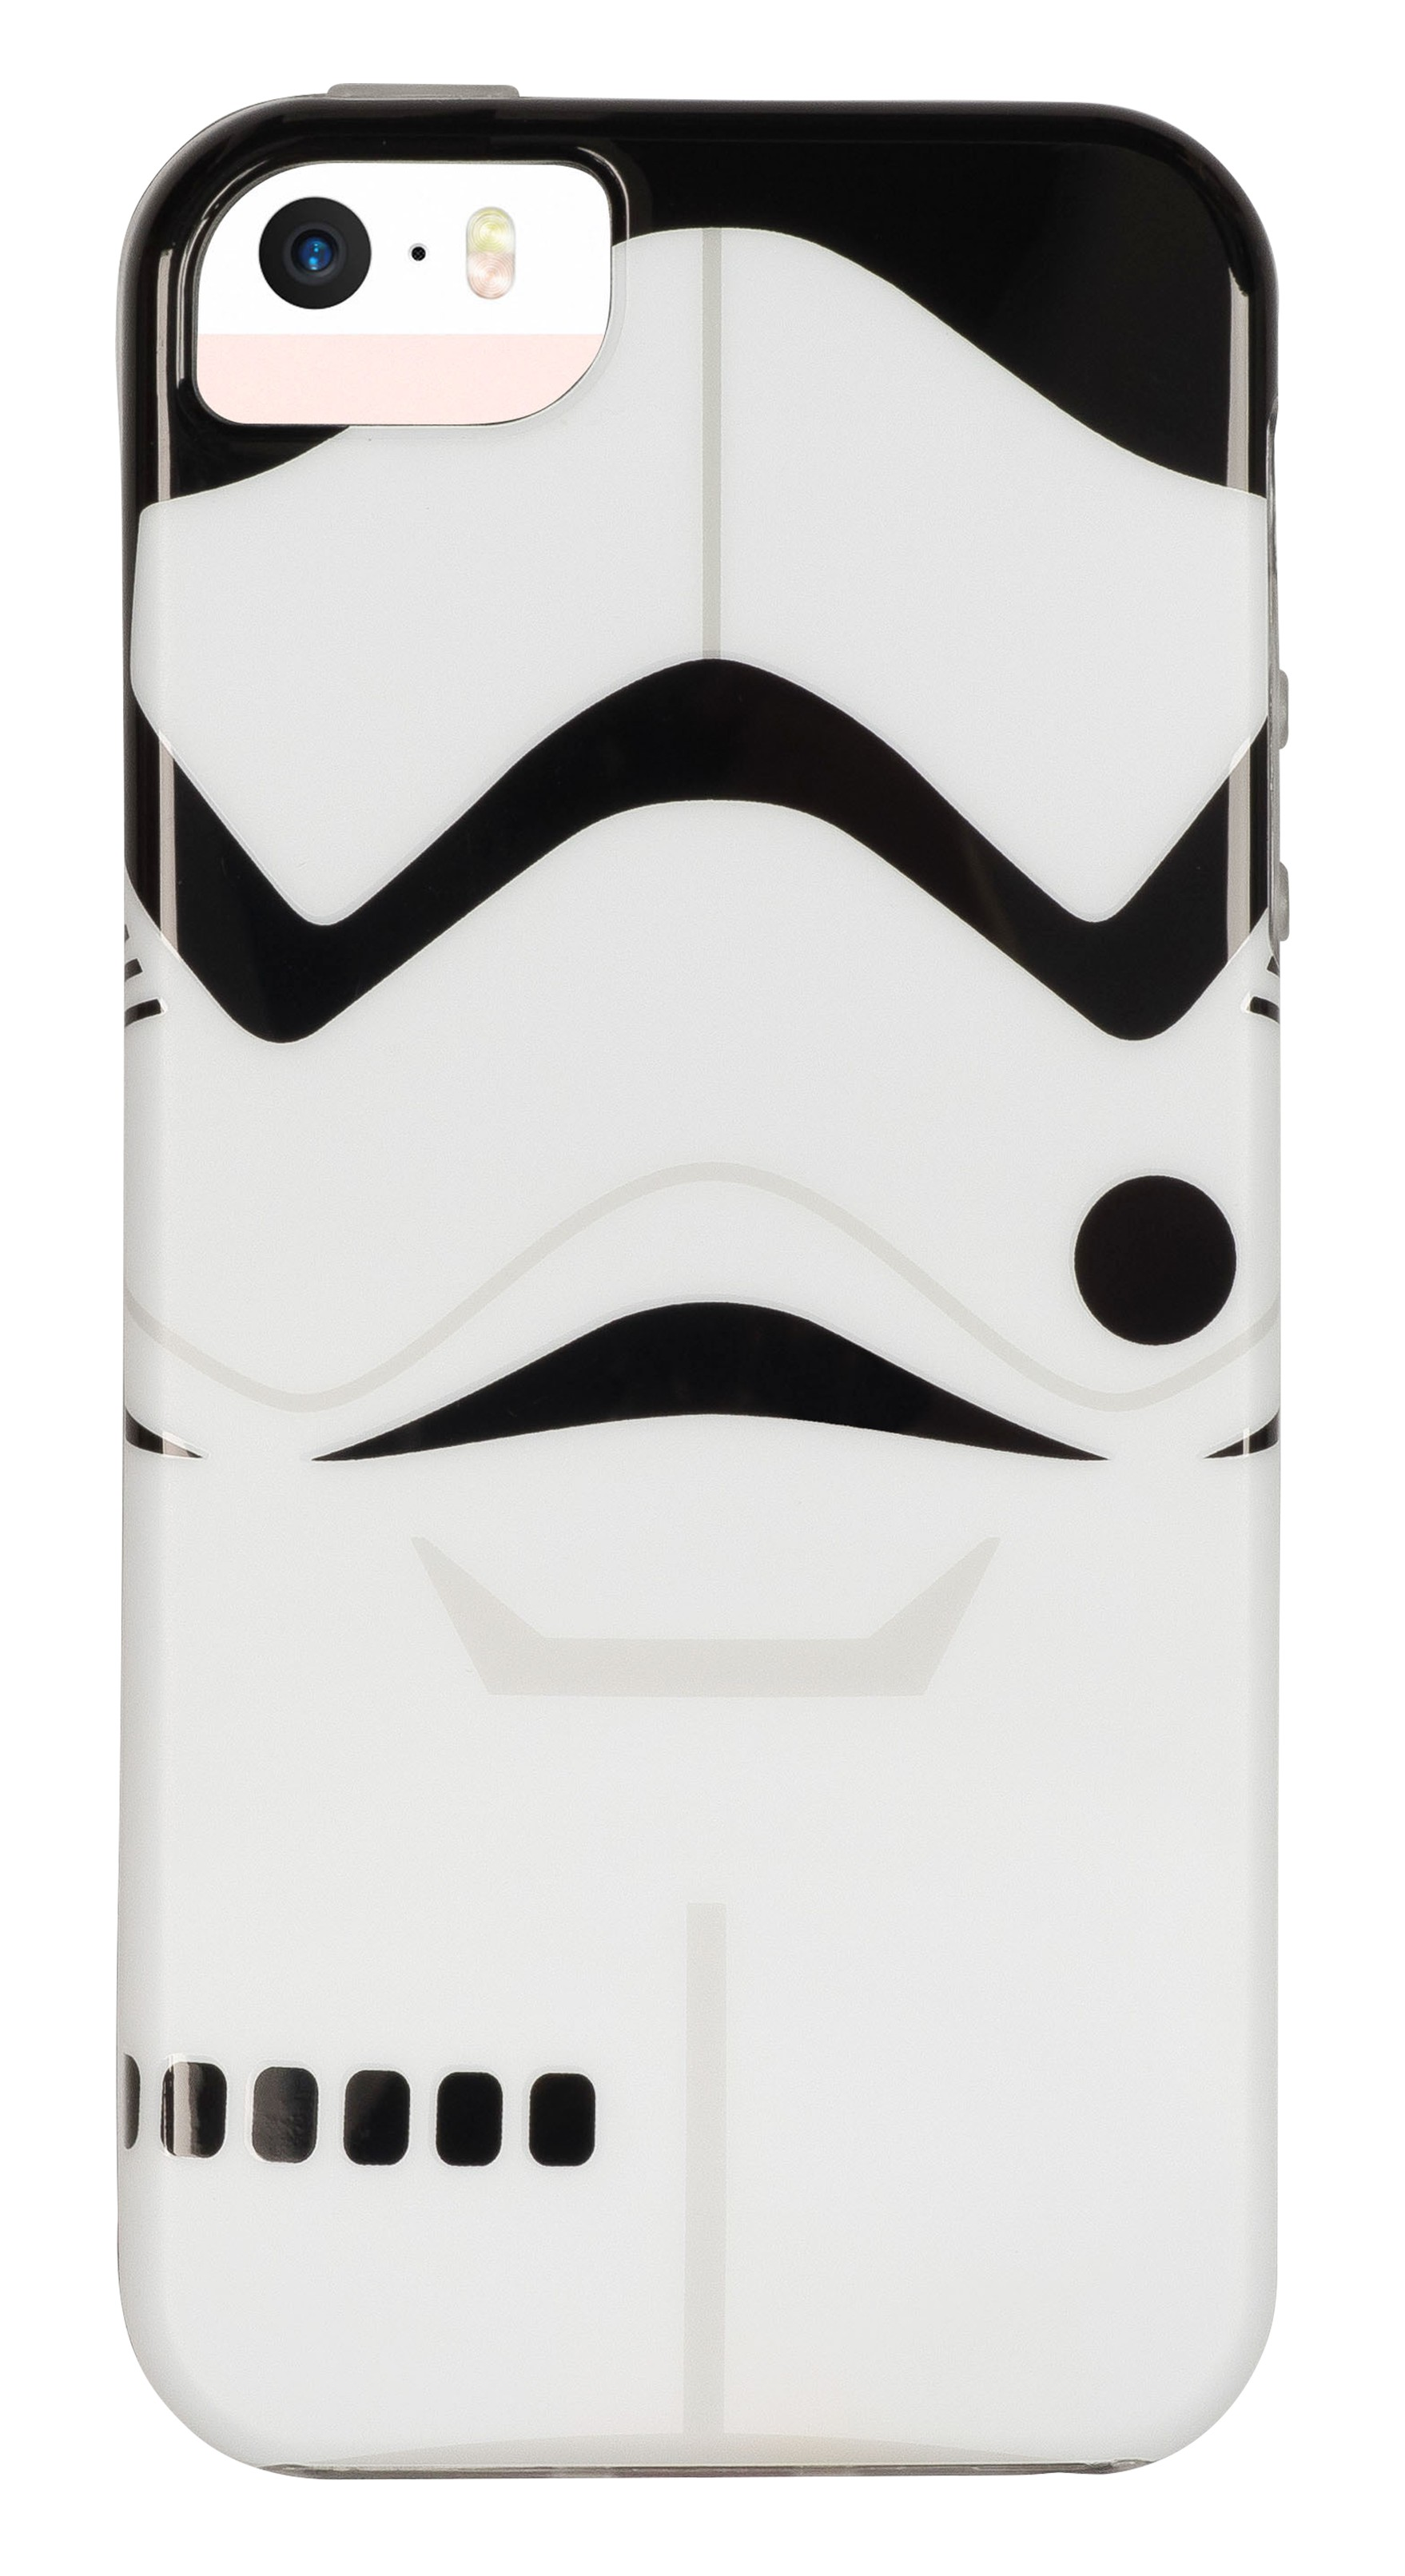 Tribe - Storm Trooper - Star Wars - Cover iPhone 6 / 6s - Smartphone Case - TPU - Side and Back Protection